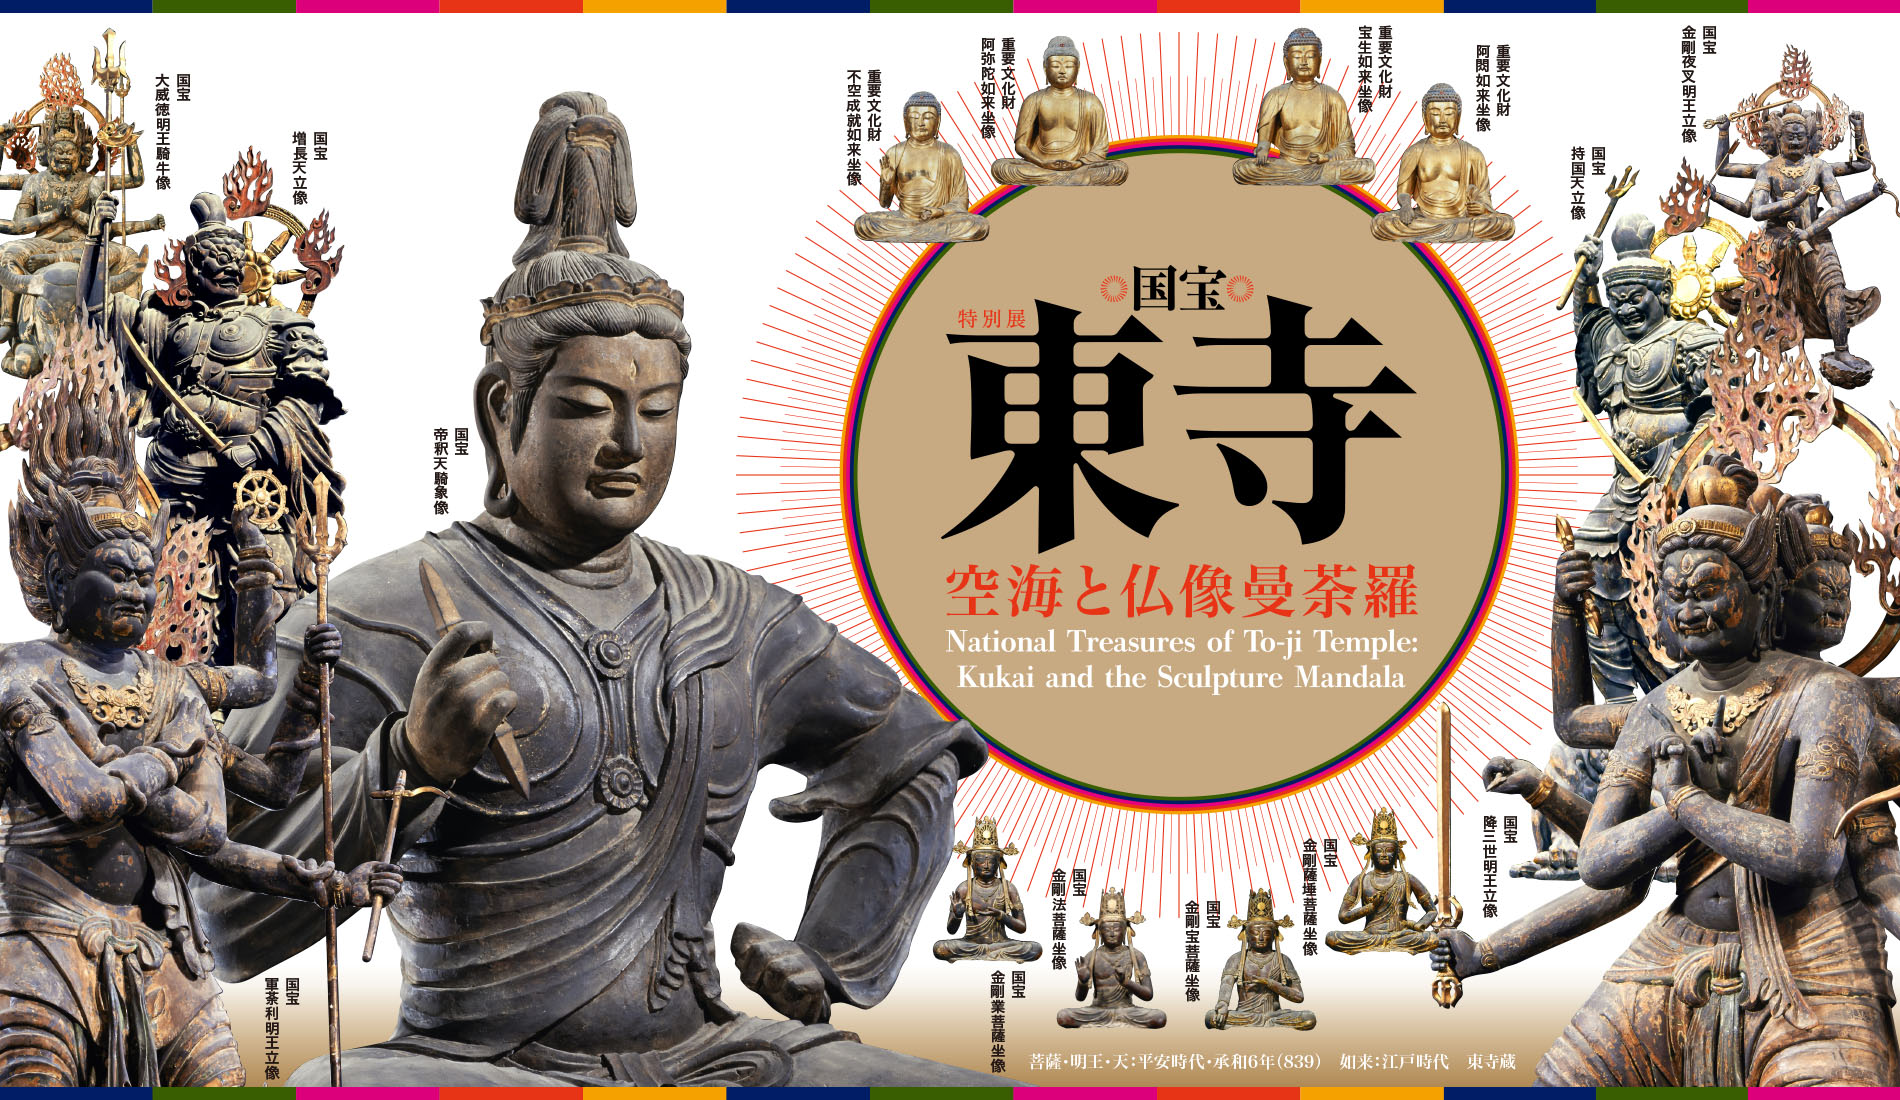 National Treasures of To-ji Temple; Kukai and the Sculpture Mandala